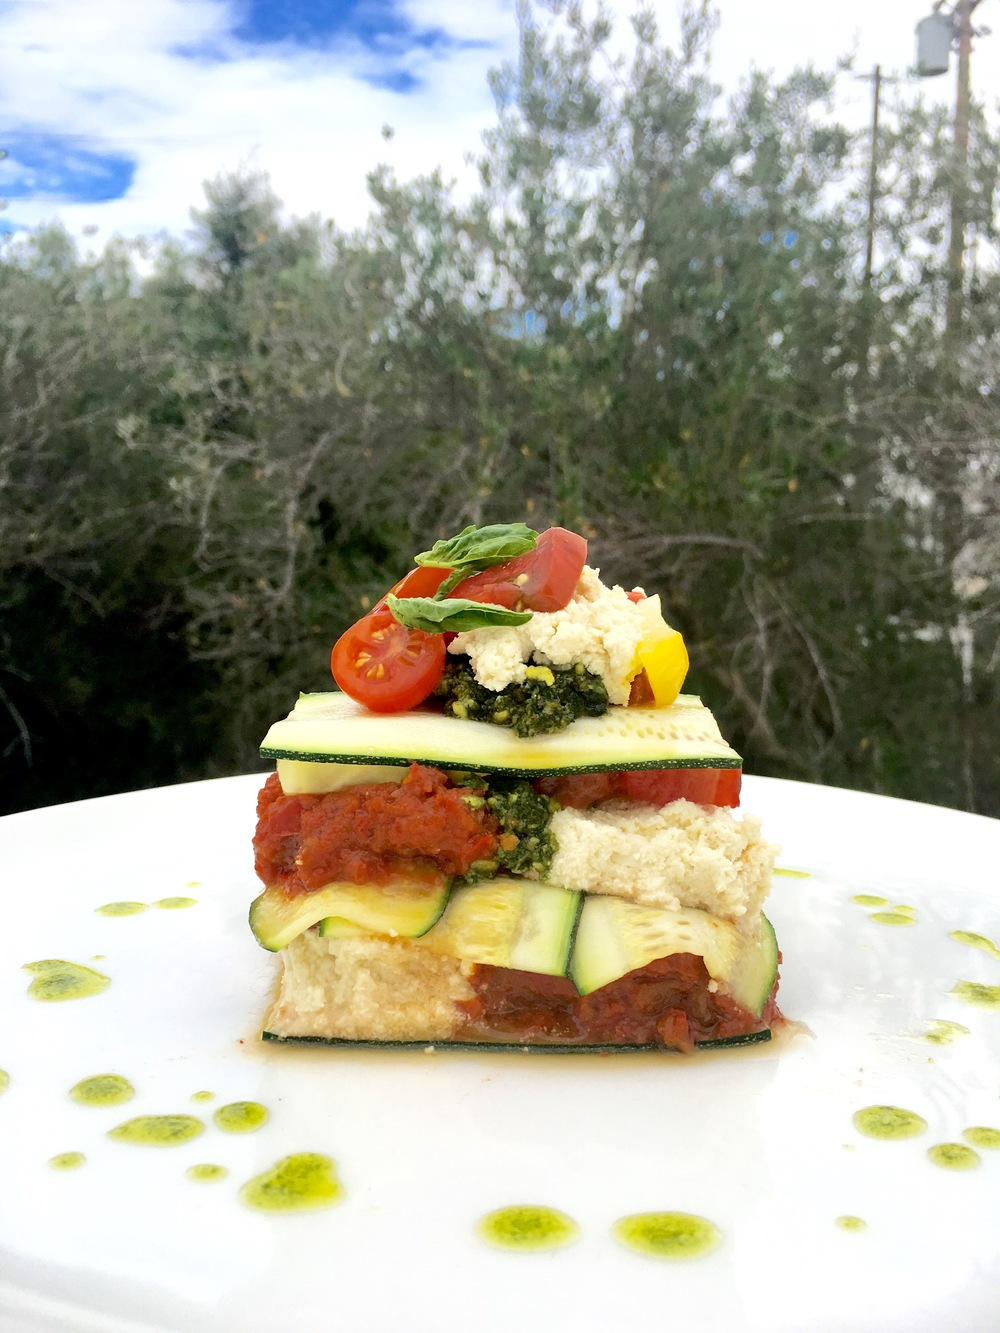 Heirloom tomato lasagna // macadamia ricotta / pistachio pesto / red pepper marinara